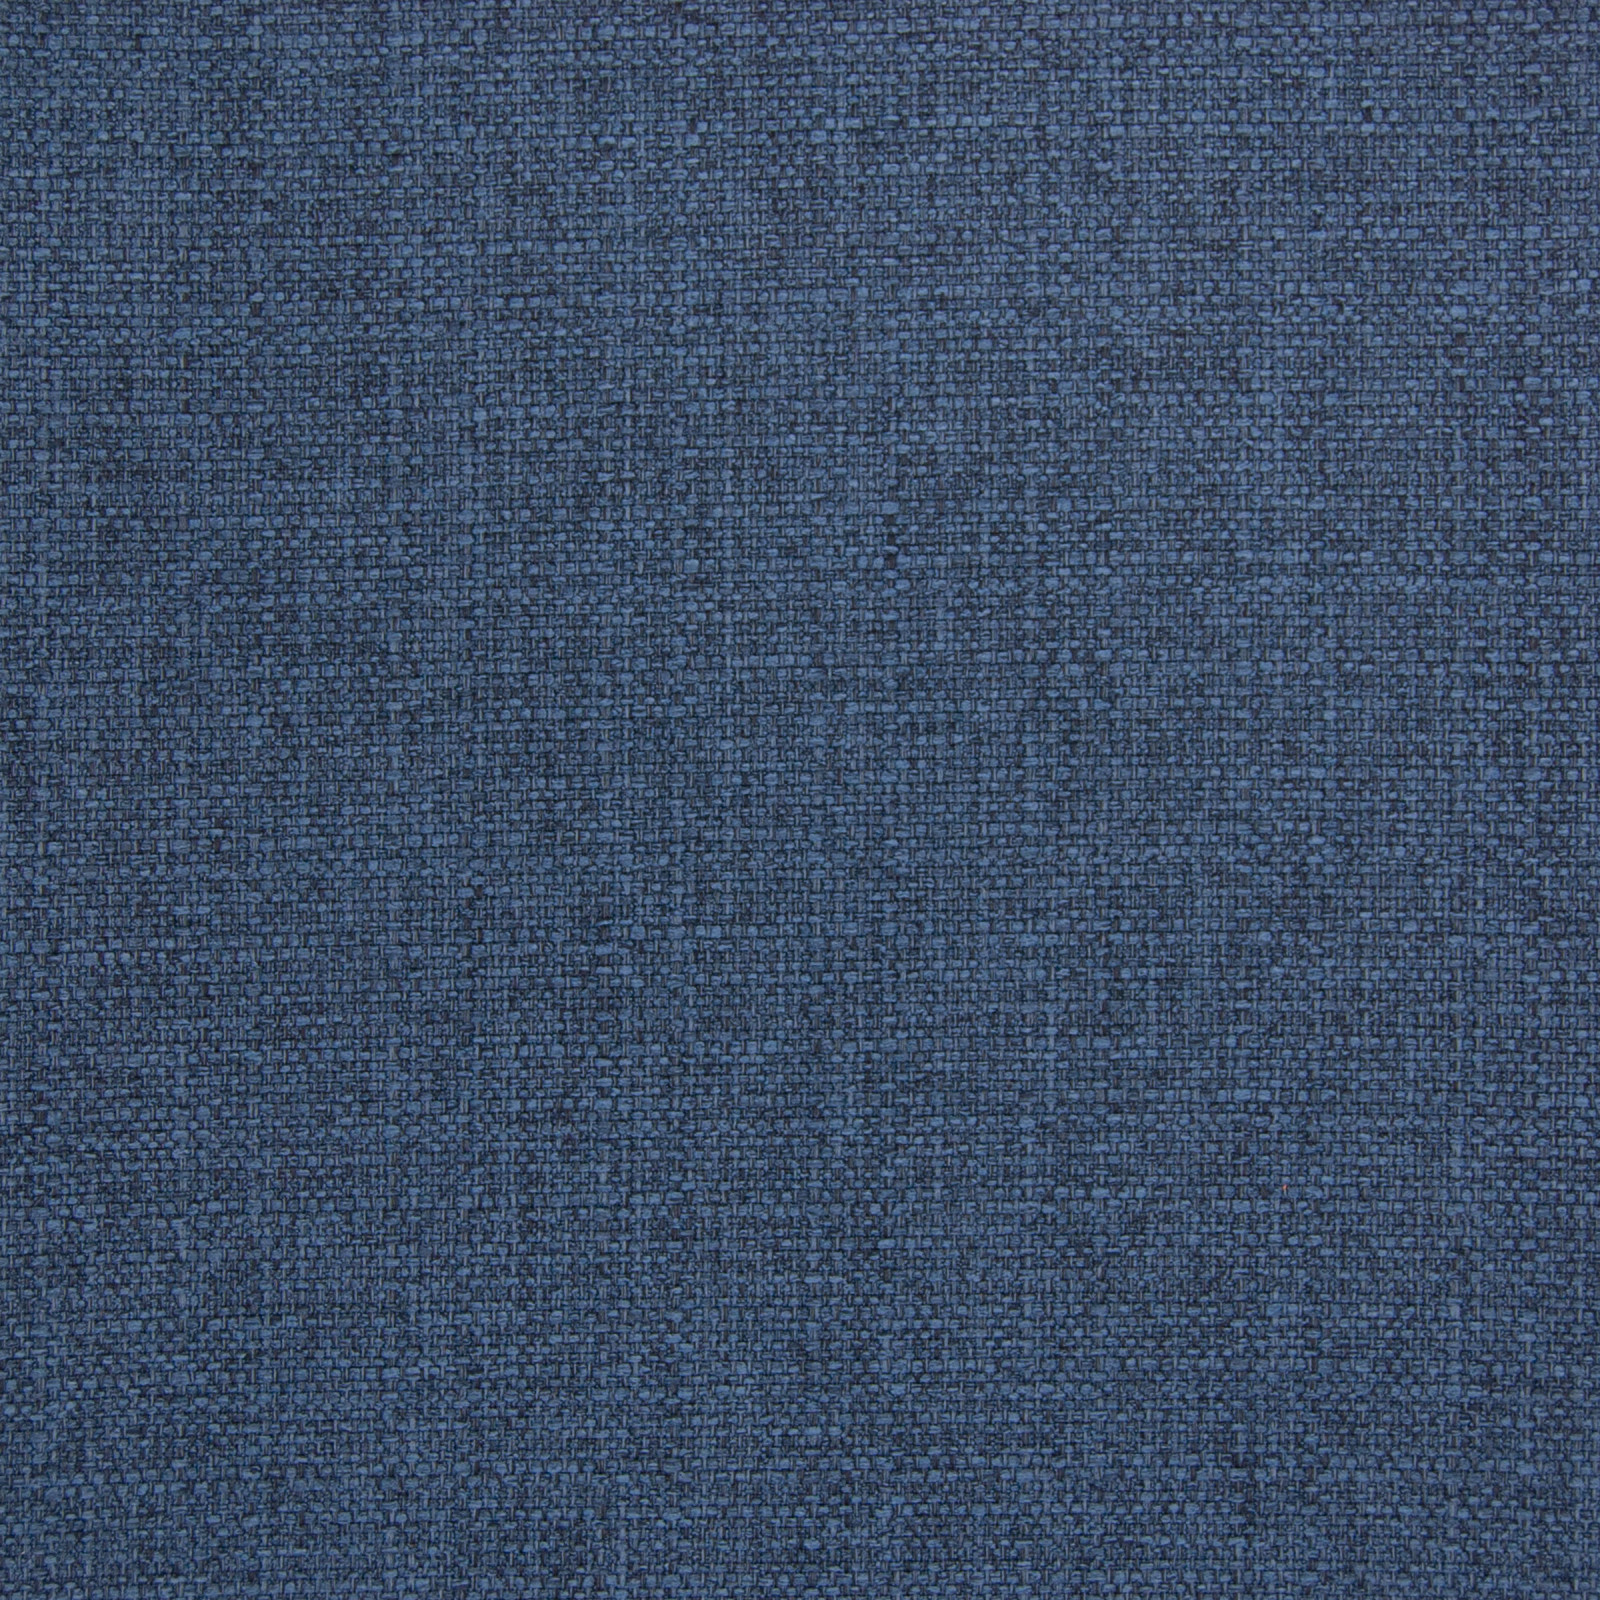 Colonial Blue Solid Woven Upholstery Fabric